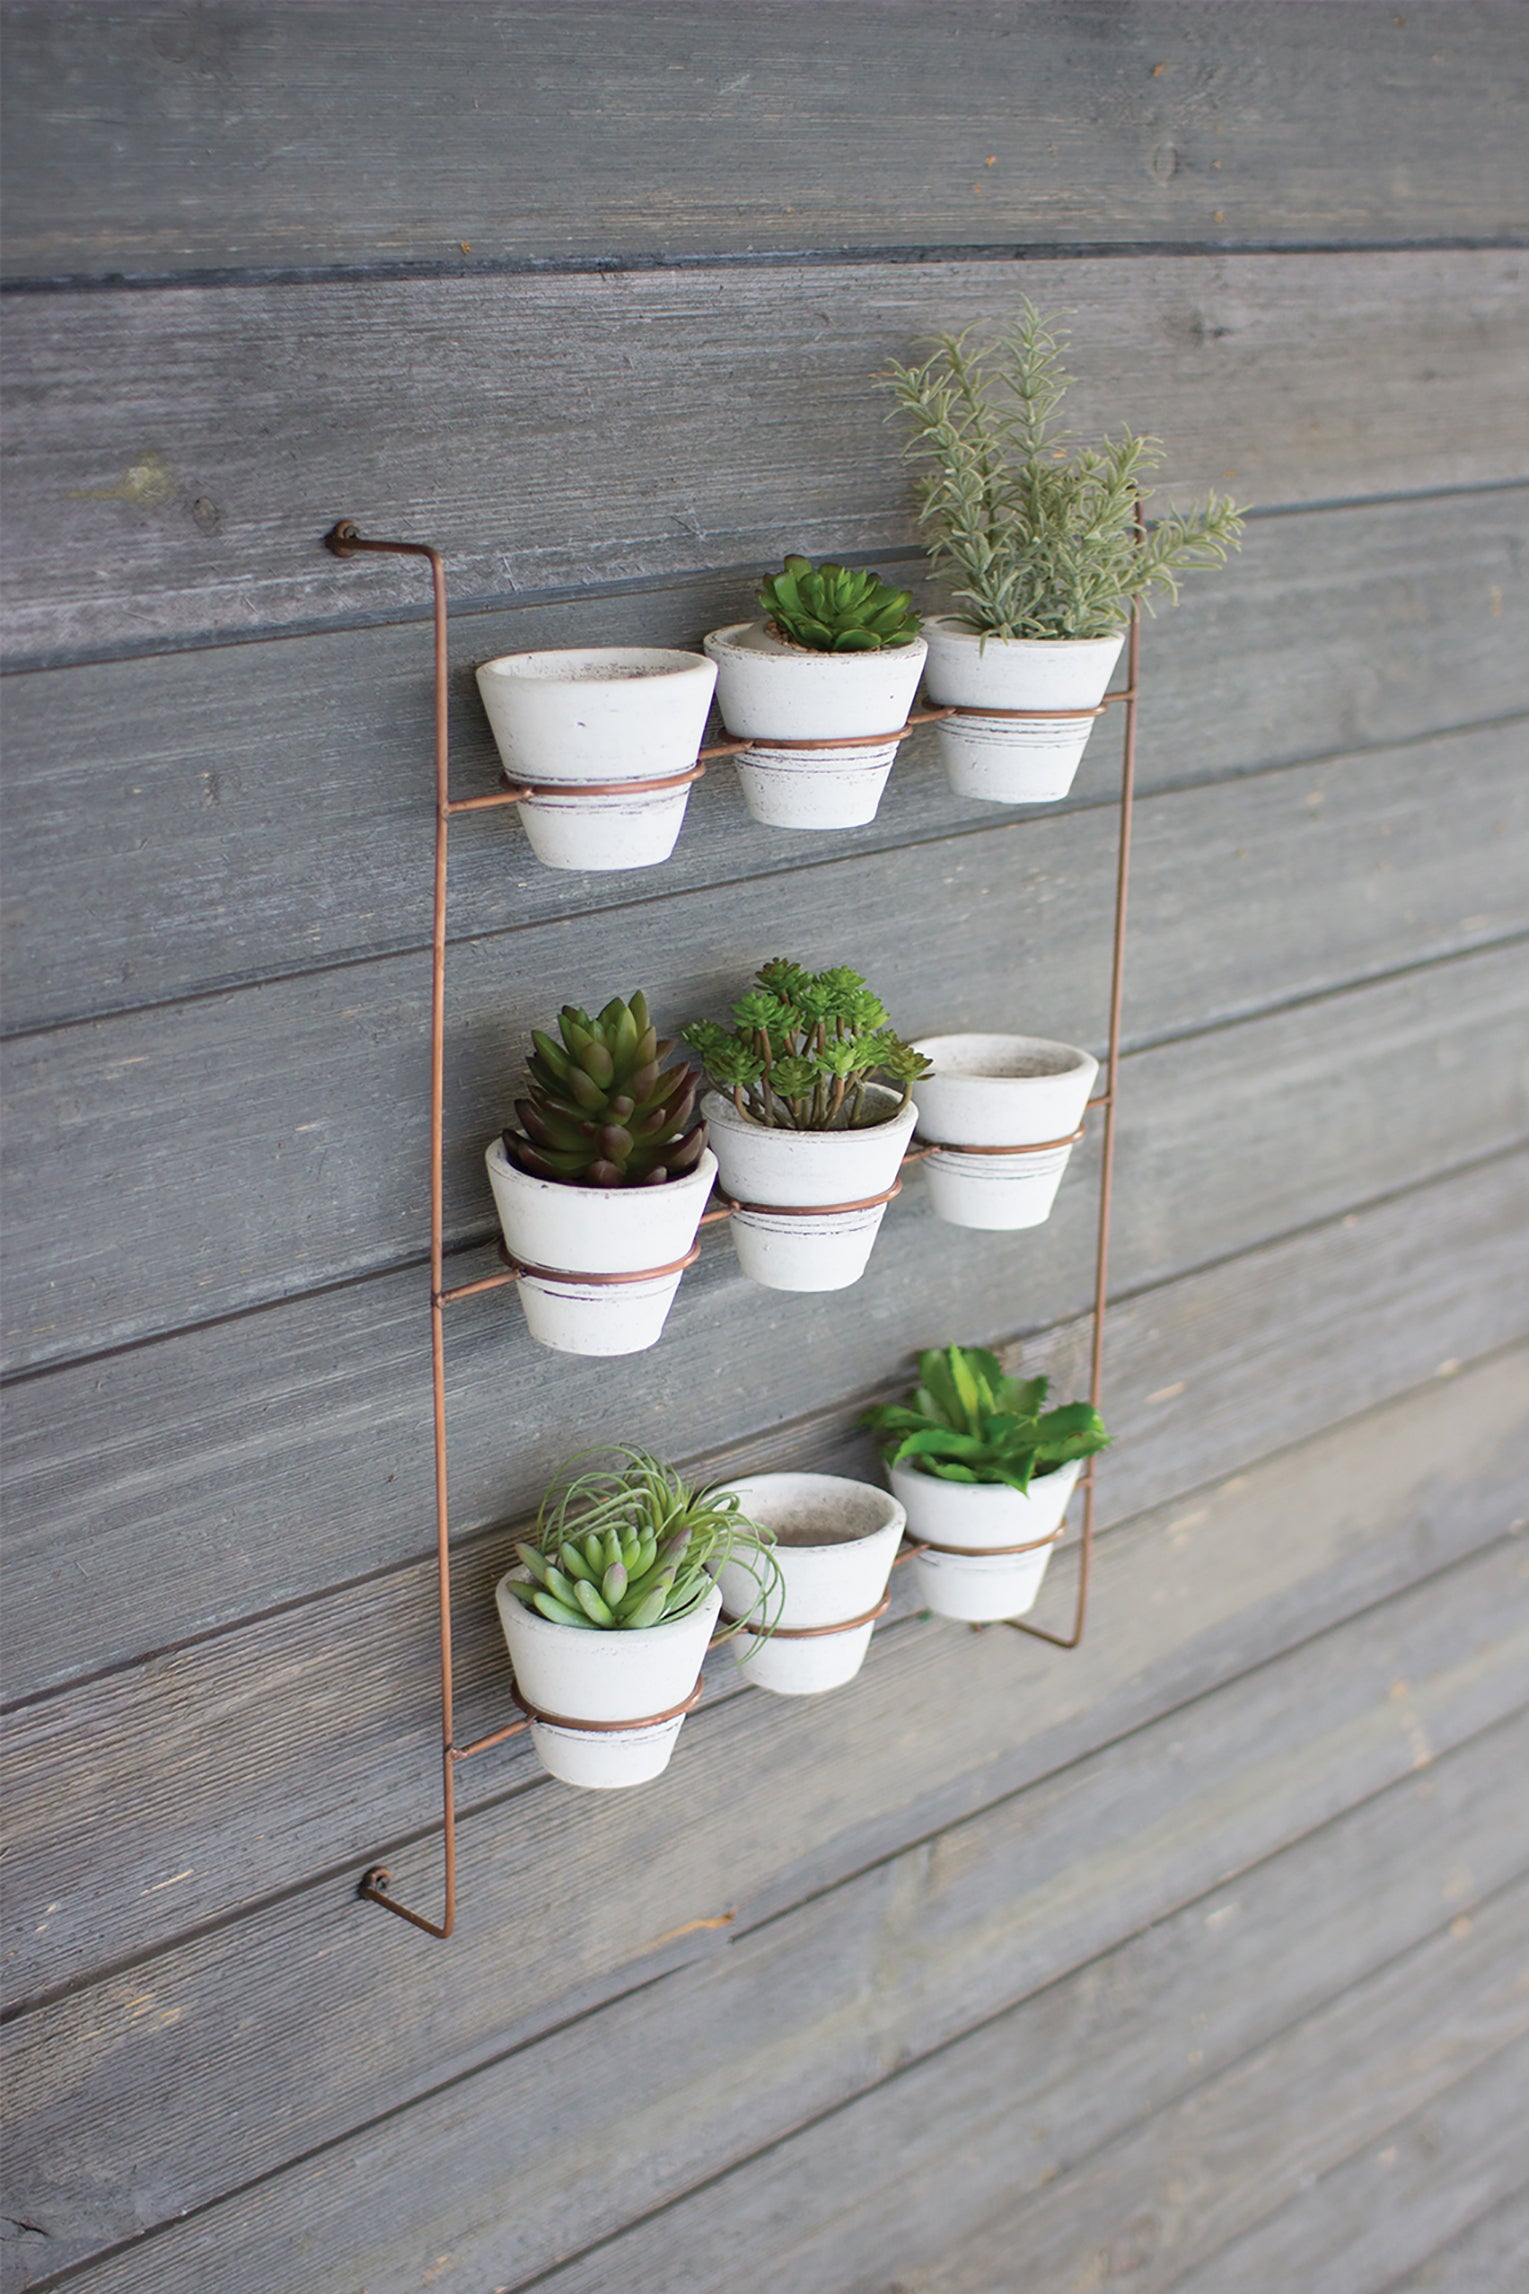 Southwest Boho Hanging Succulent Wall Planter With